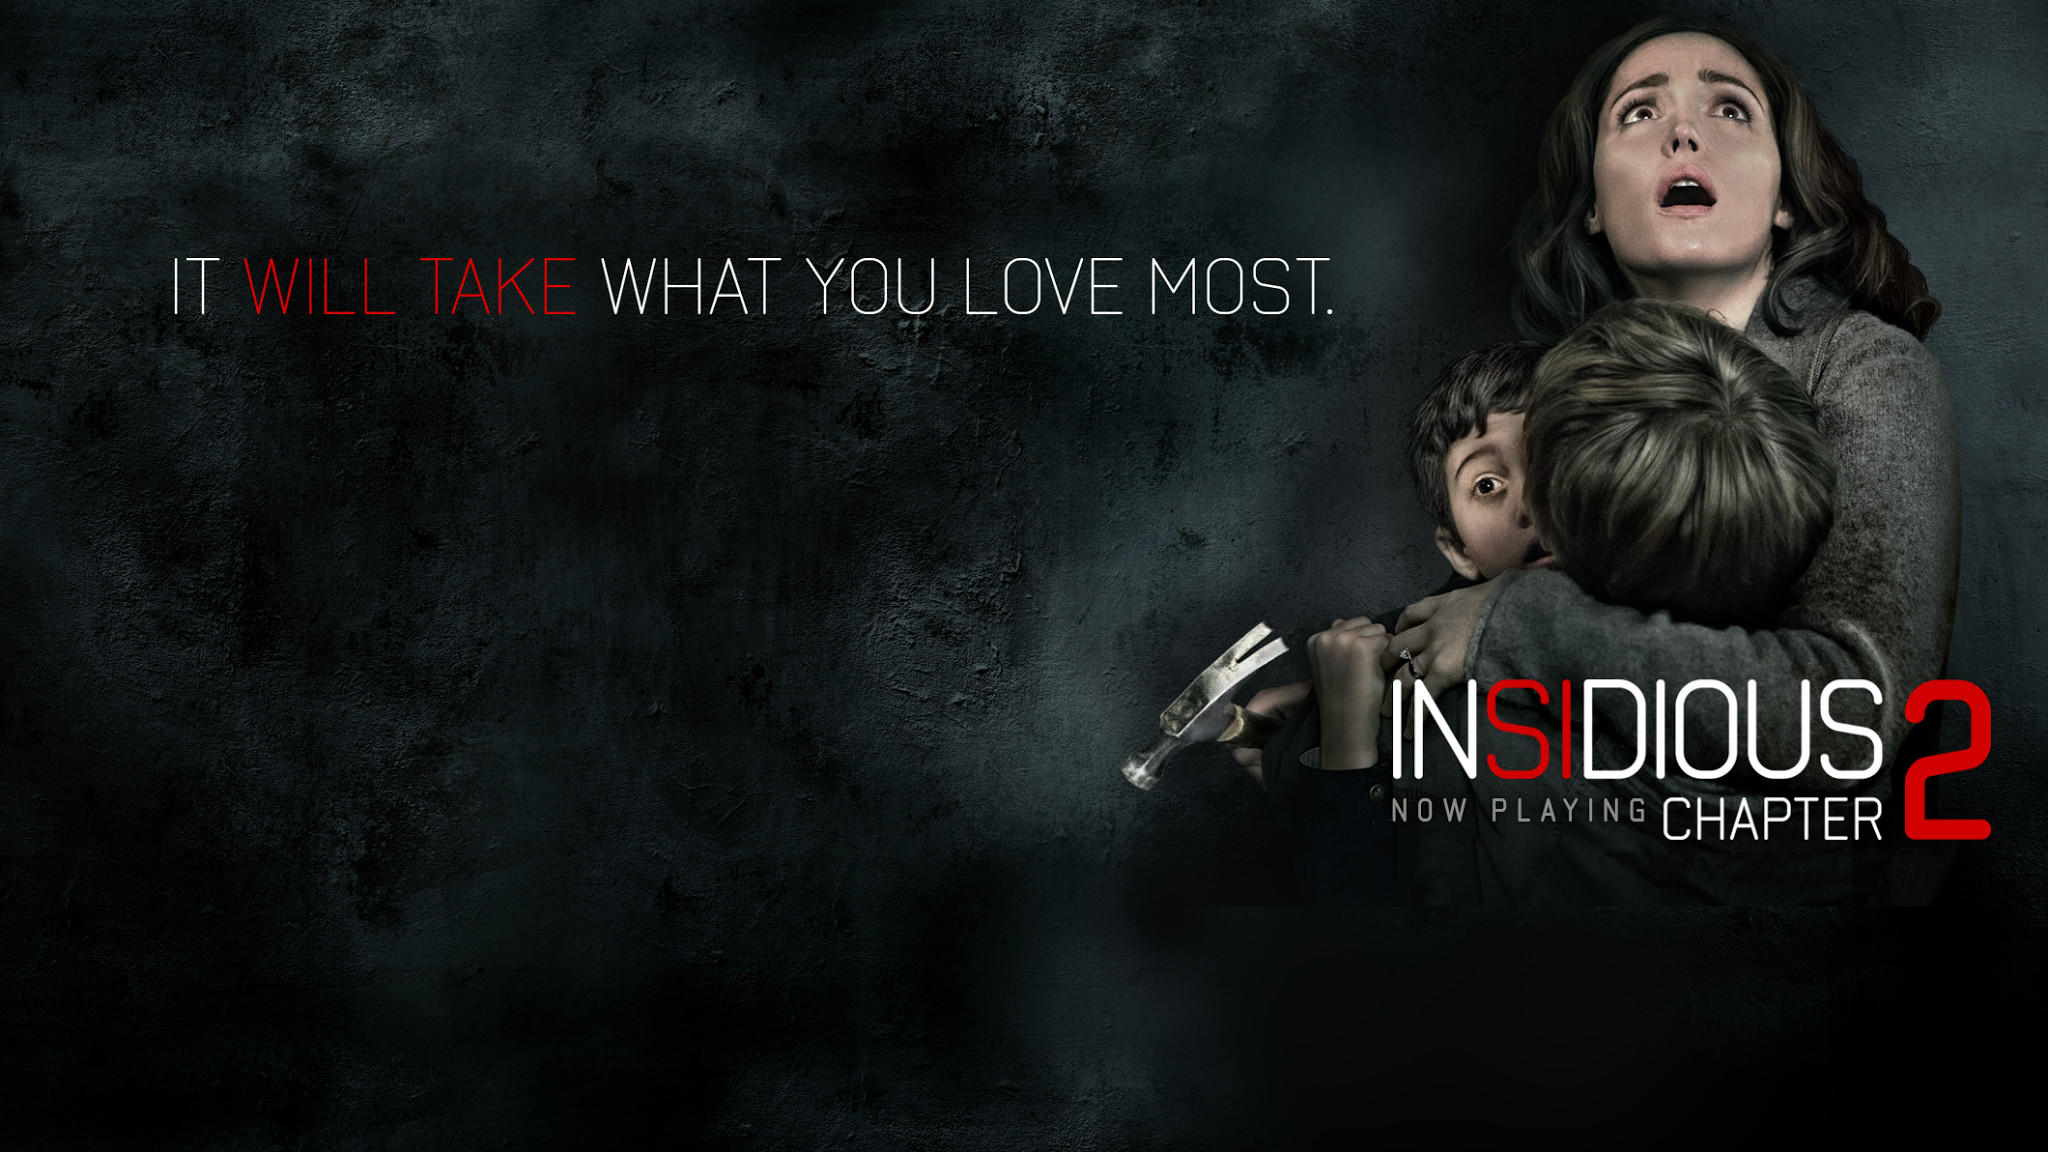 Download Insidious Horror Movie Poster HD Wallpaper. Search more high .